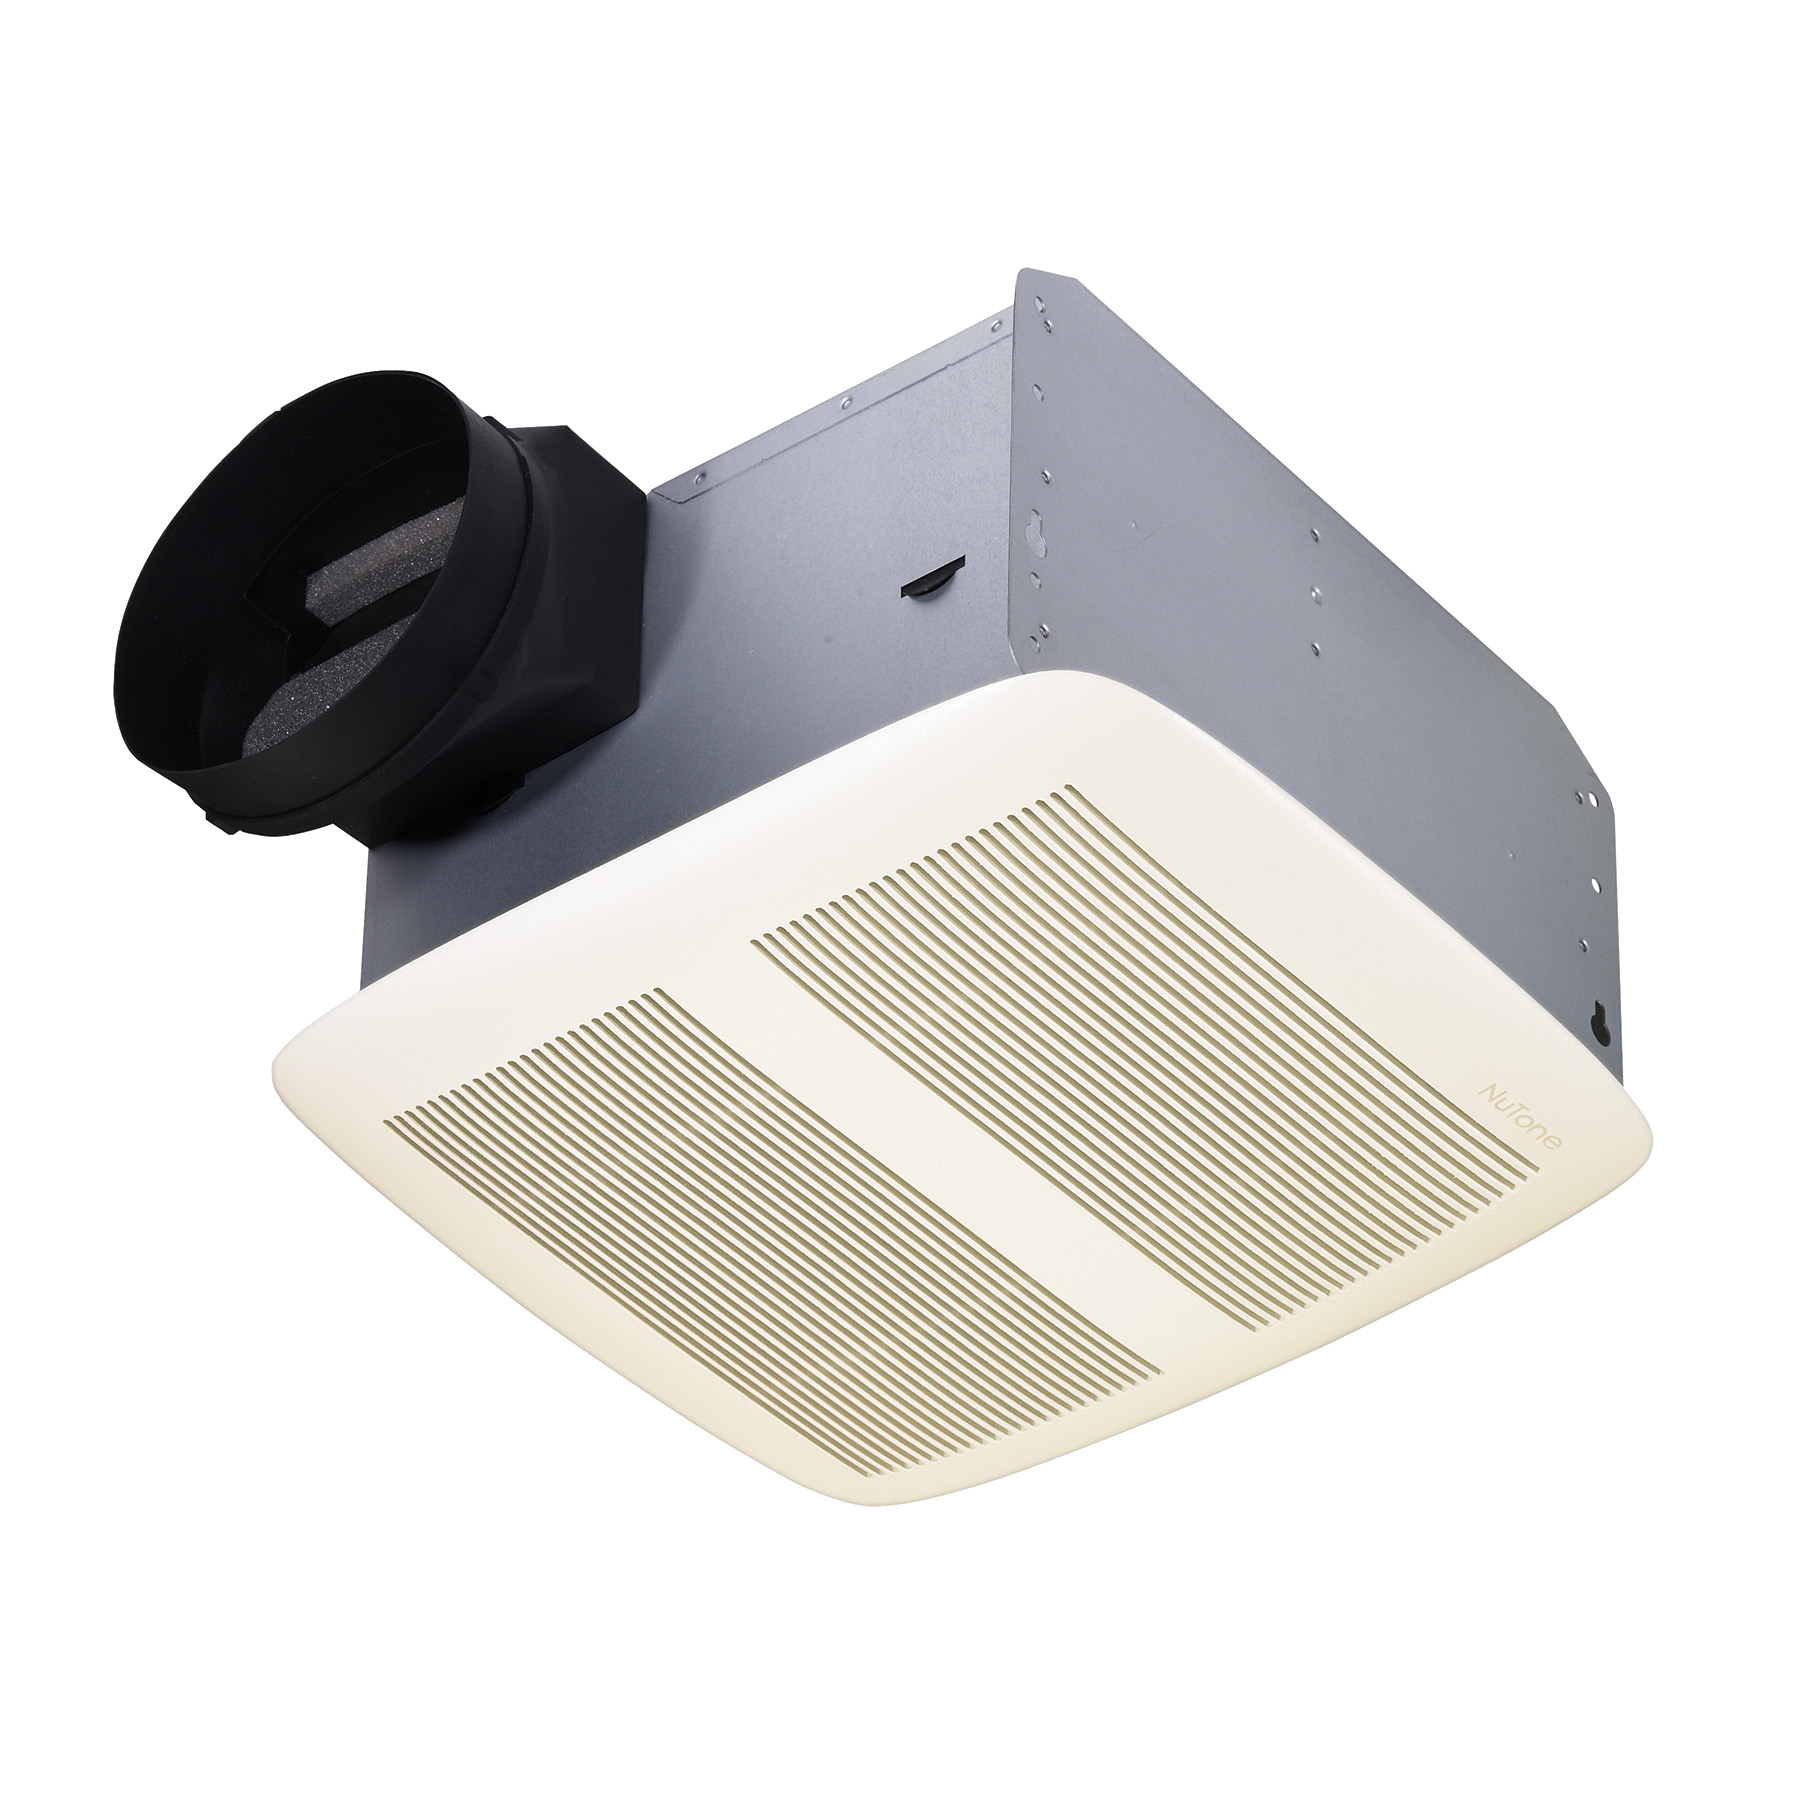 NuTone® QTXE 80 CFM Ventilation Fan with White Grille, 0.3 Sones; ENERGY STAR®